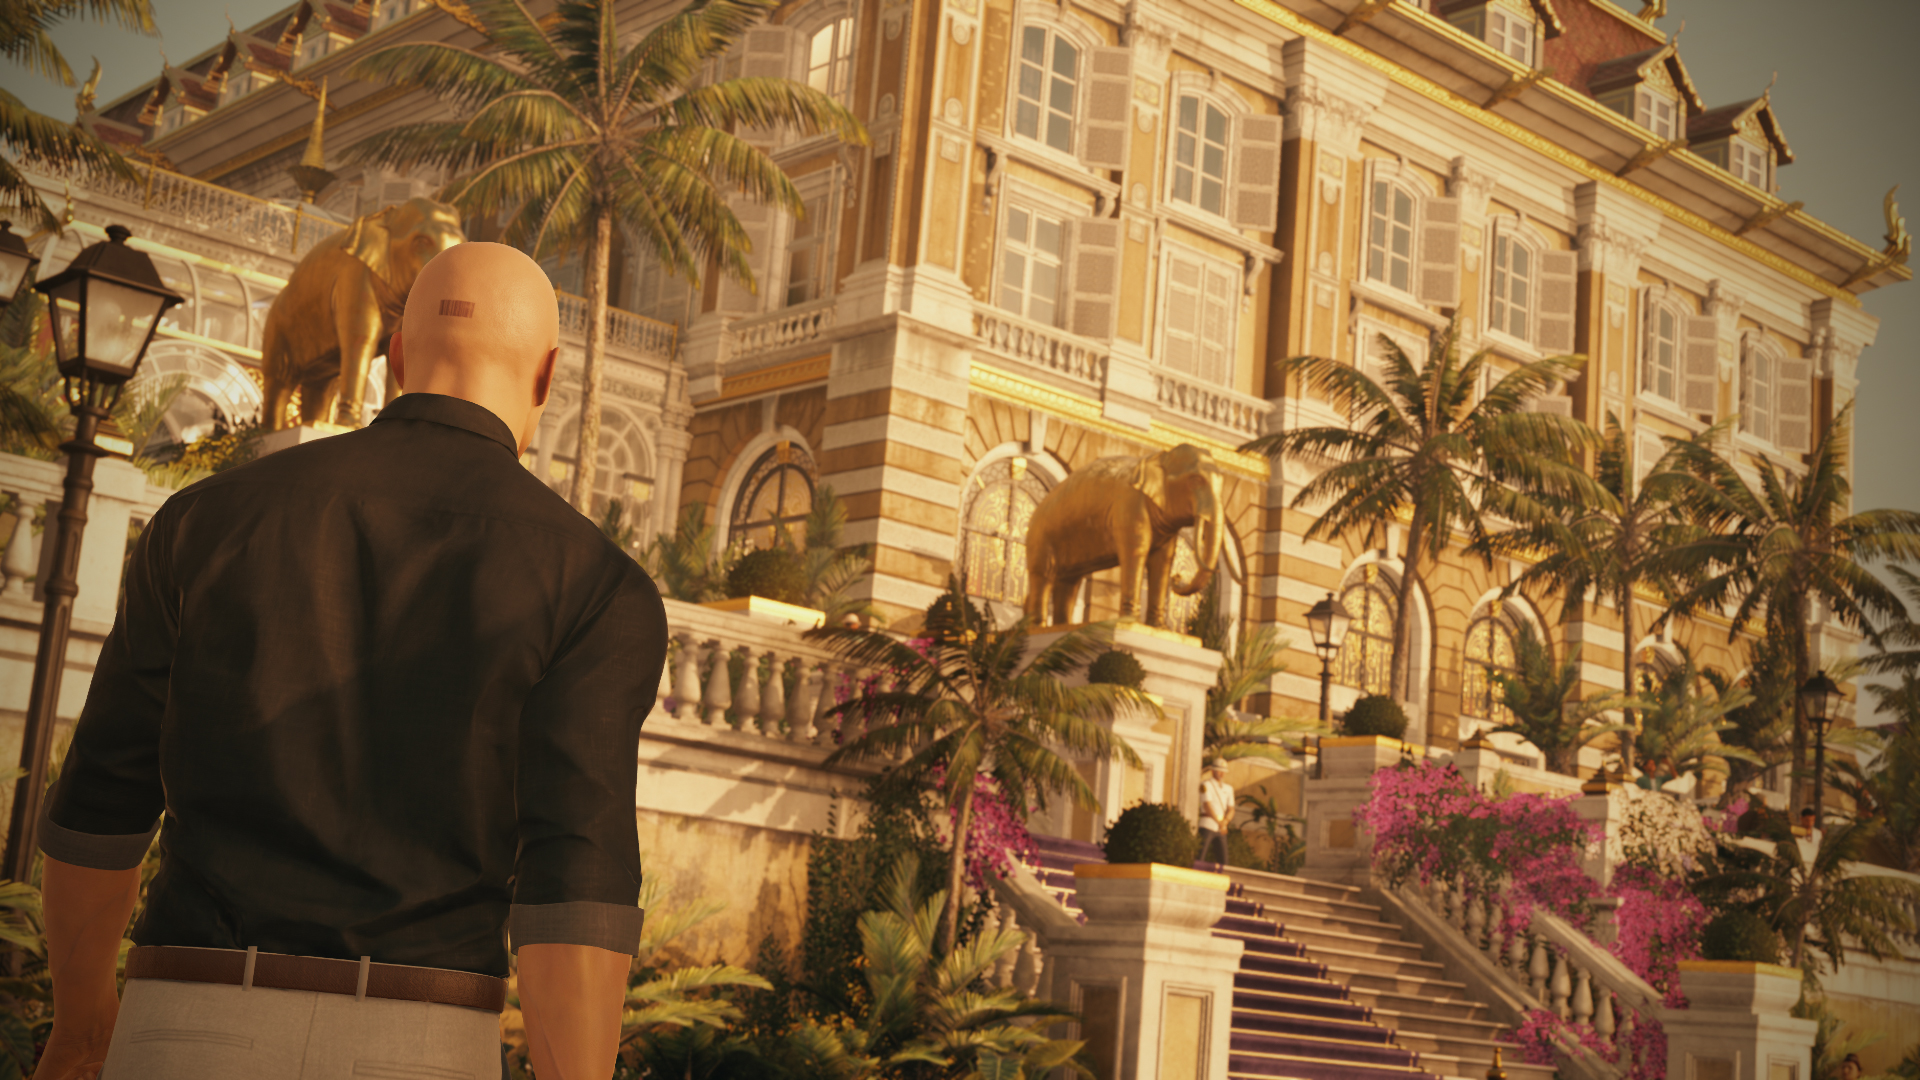 tmp_14389-HITMAN_Screenshot_Episode_4__Bangkok_1_05_1470396108.08.2016884185544